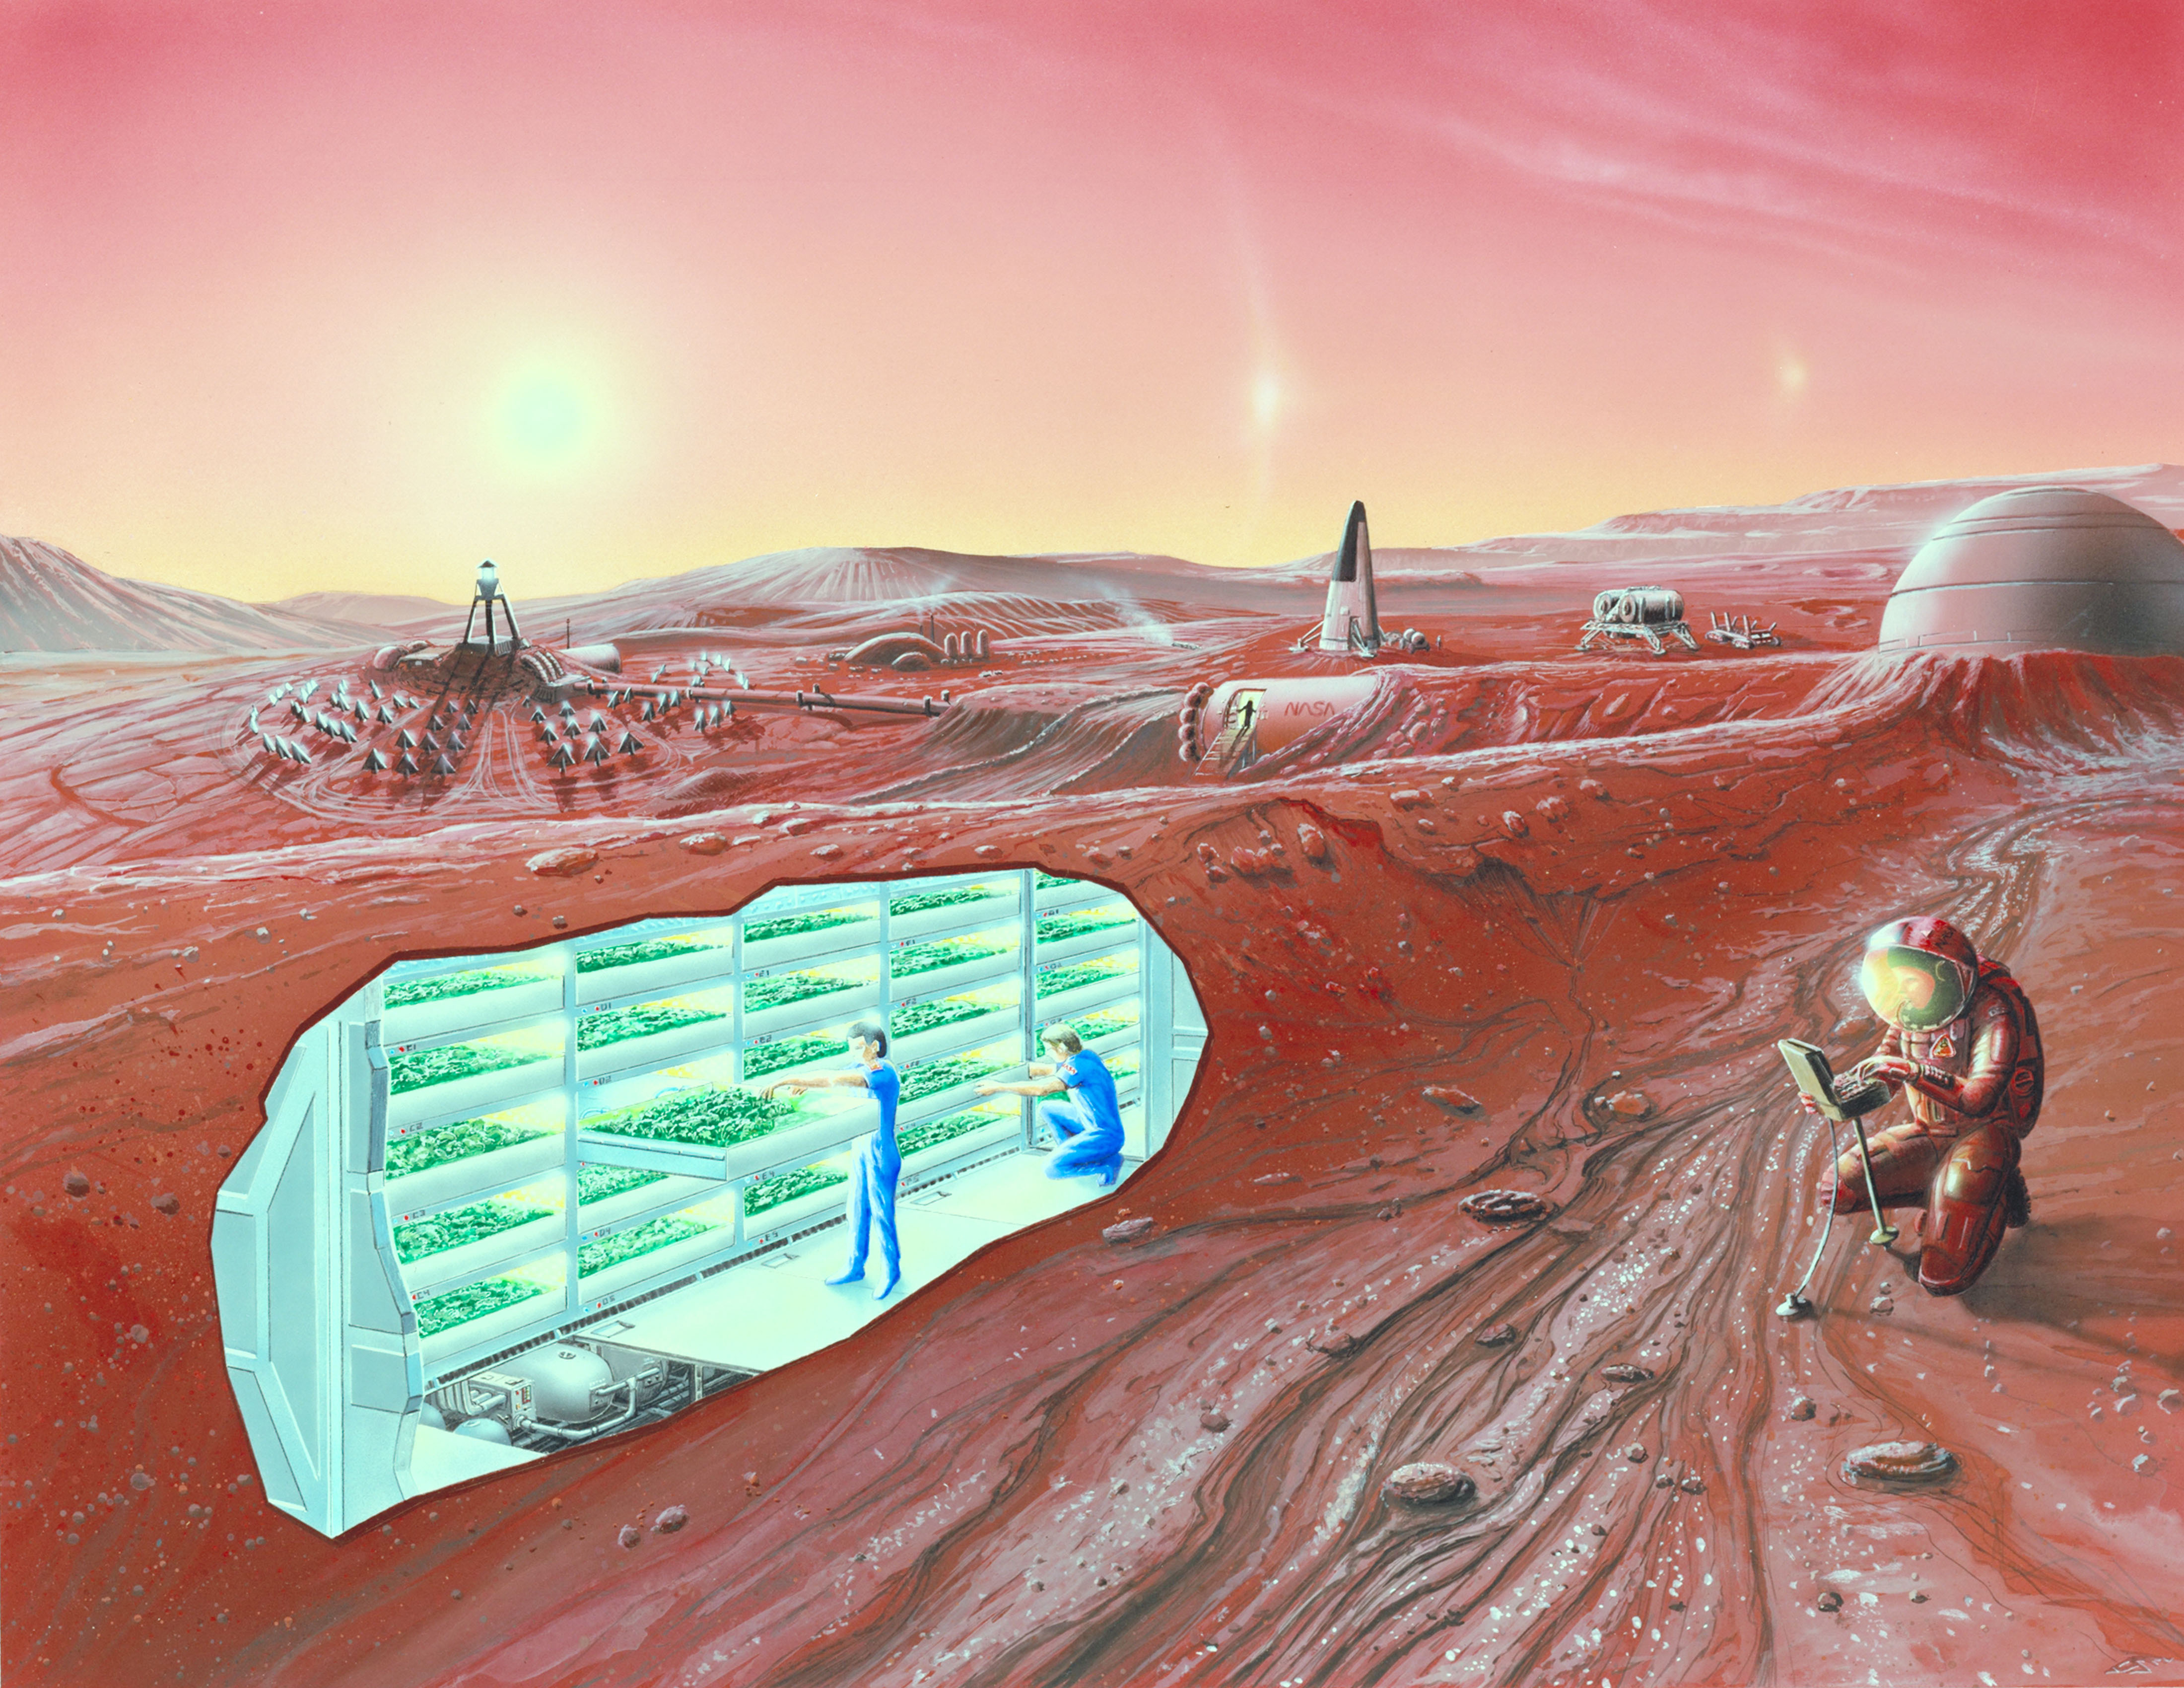 mission to mars concept art - photo #22